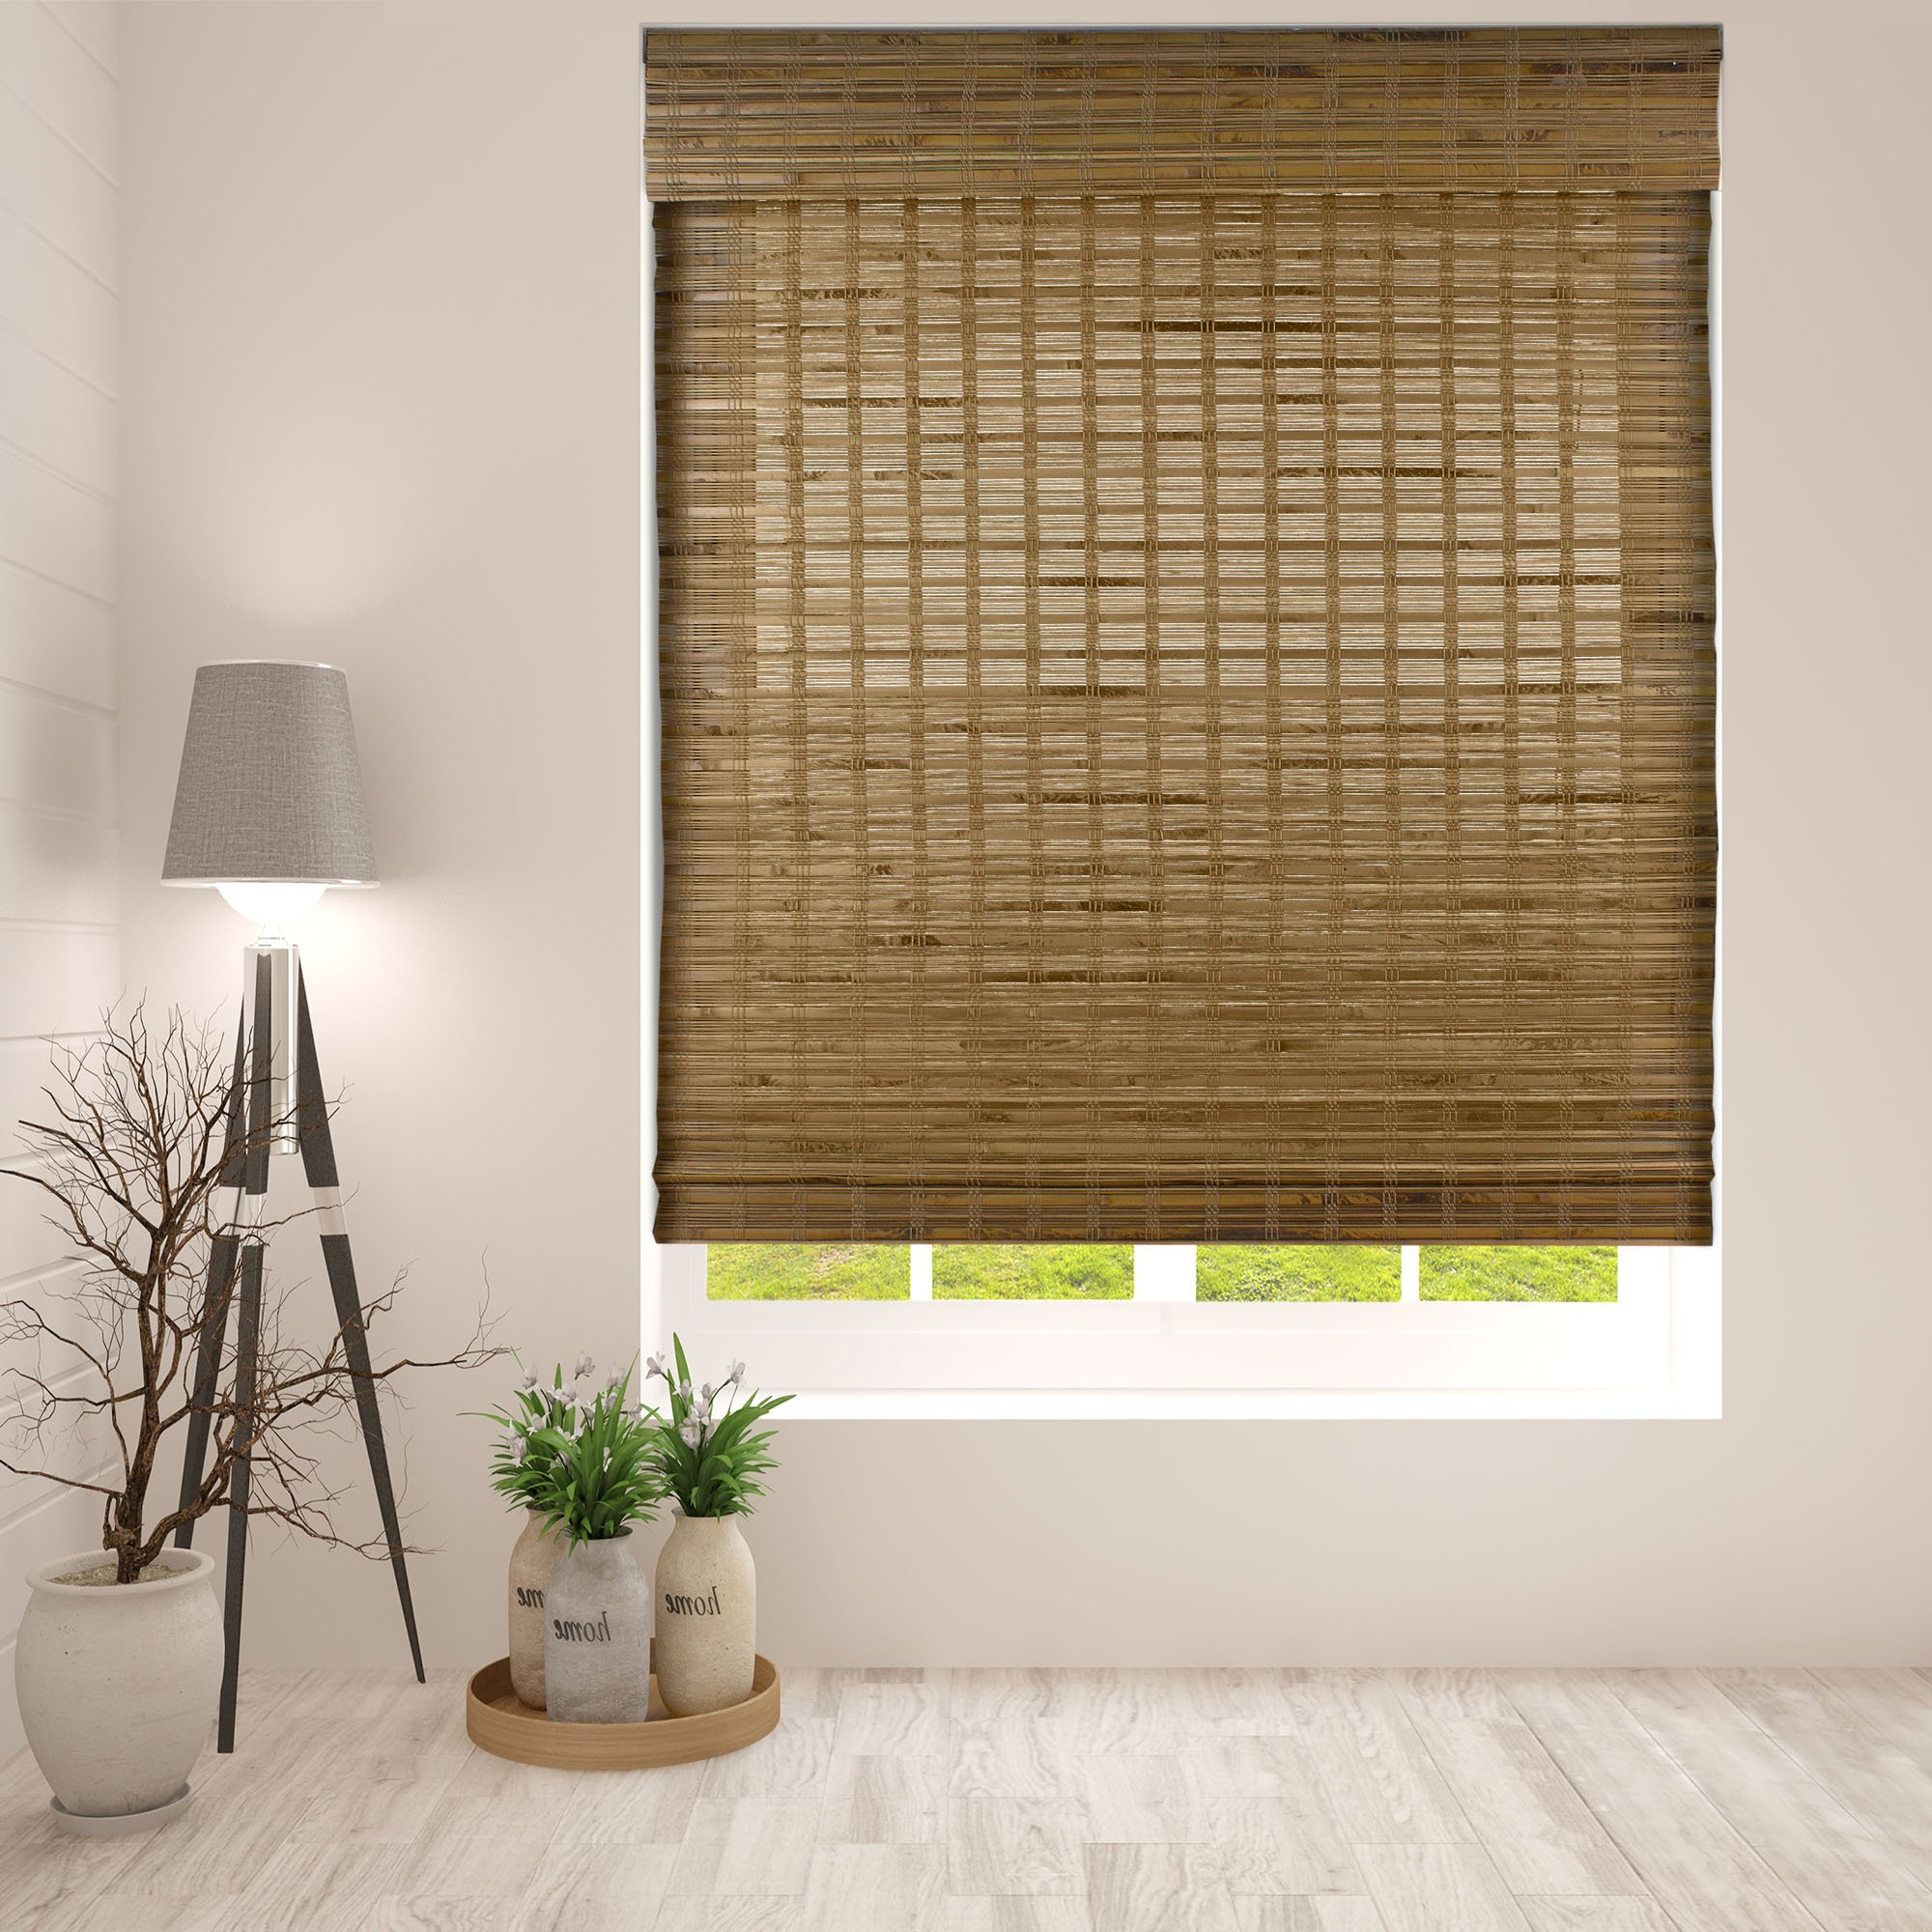 Arlo Blinds Dali Native Cordless Bamboo Shades Blinds - Size: 46.5'' W x 60'' H, Innovative Cordless Lift System ensures Safety and Ease of use. by Arlo Blinds